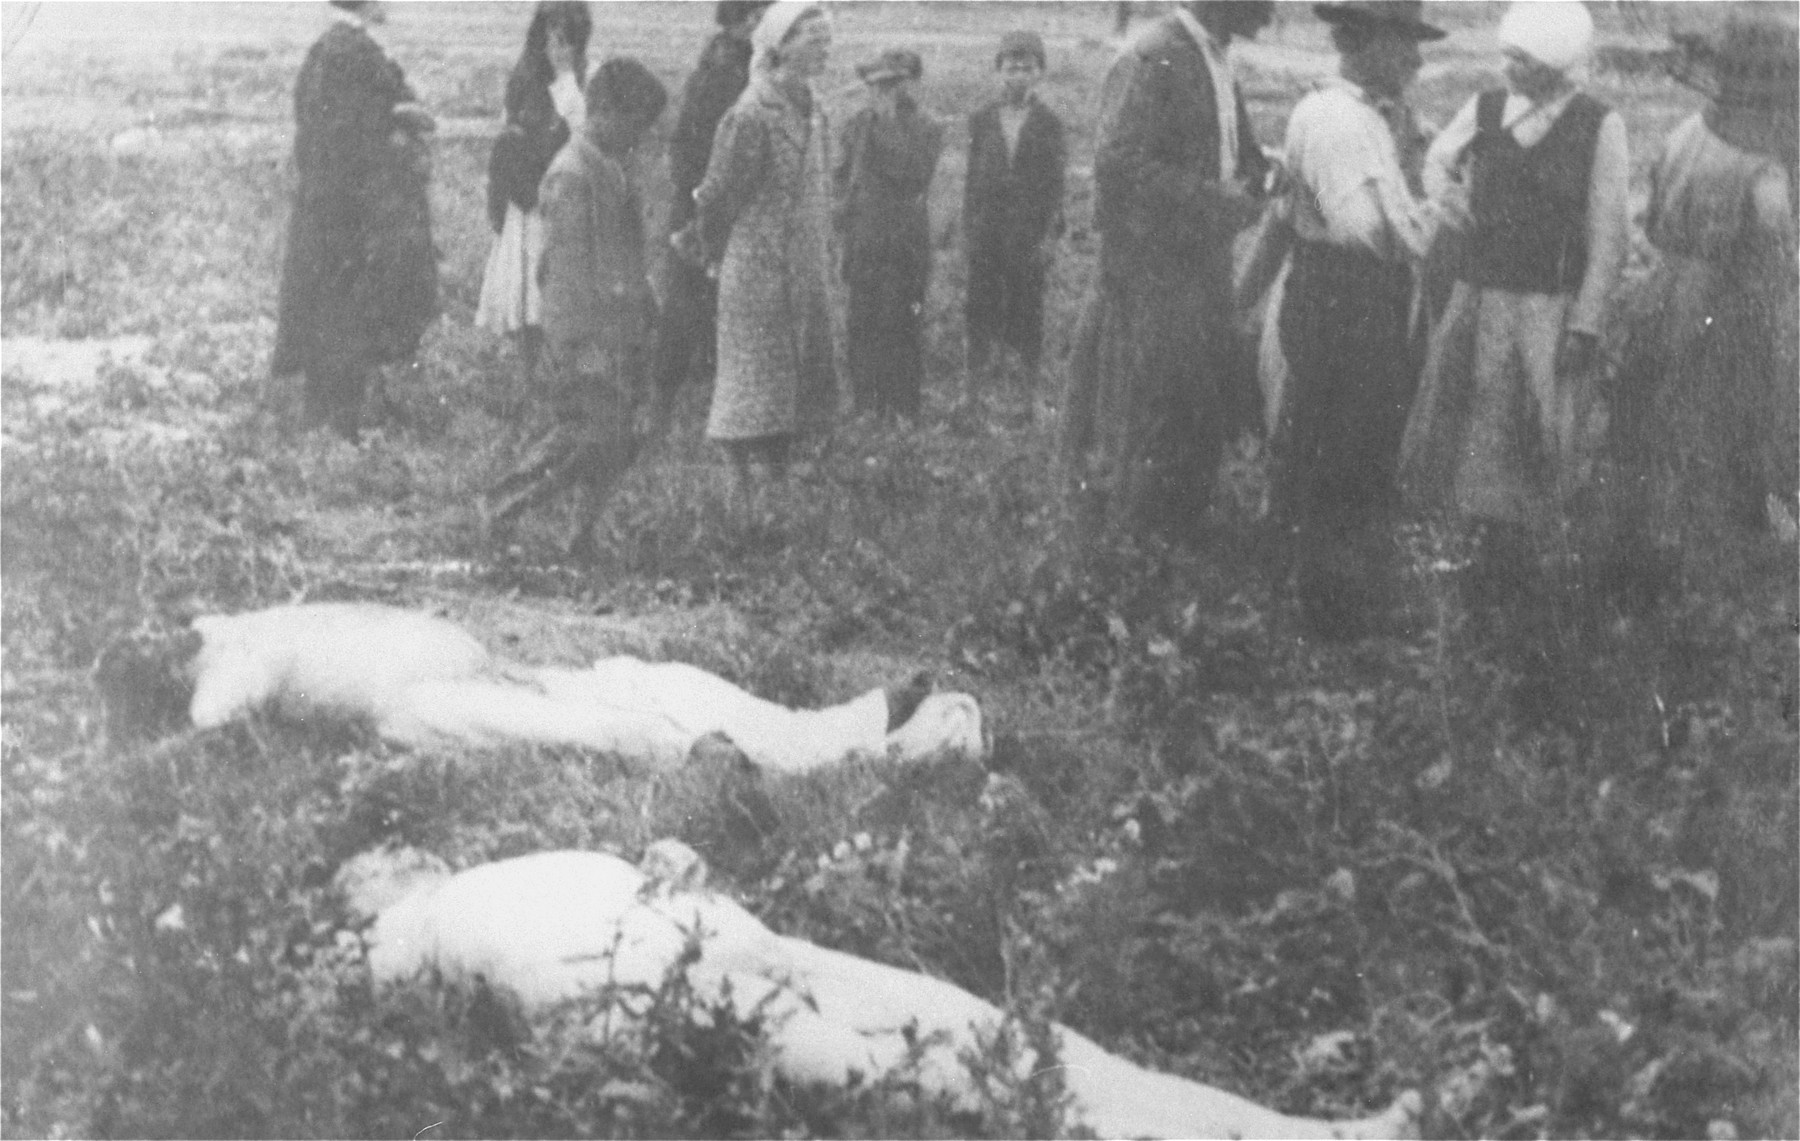 Civilians walk among the bodies that have been removed from the Iasi death train.